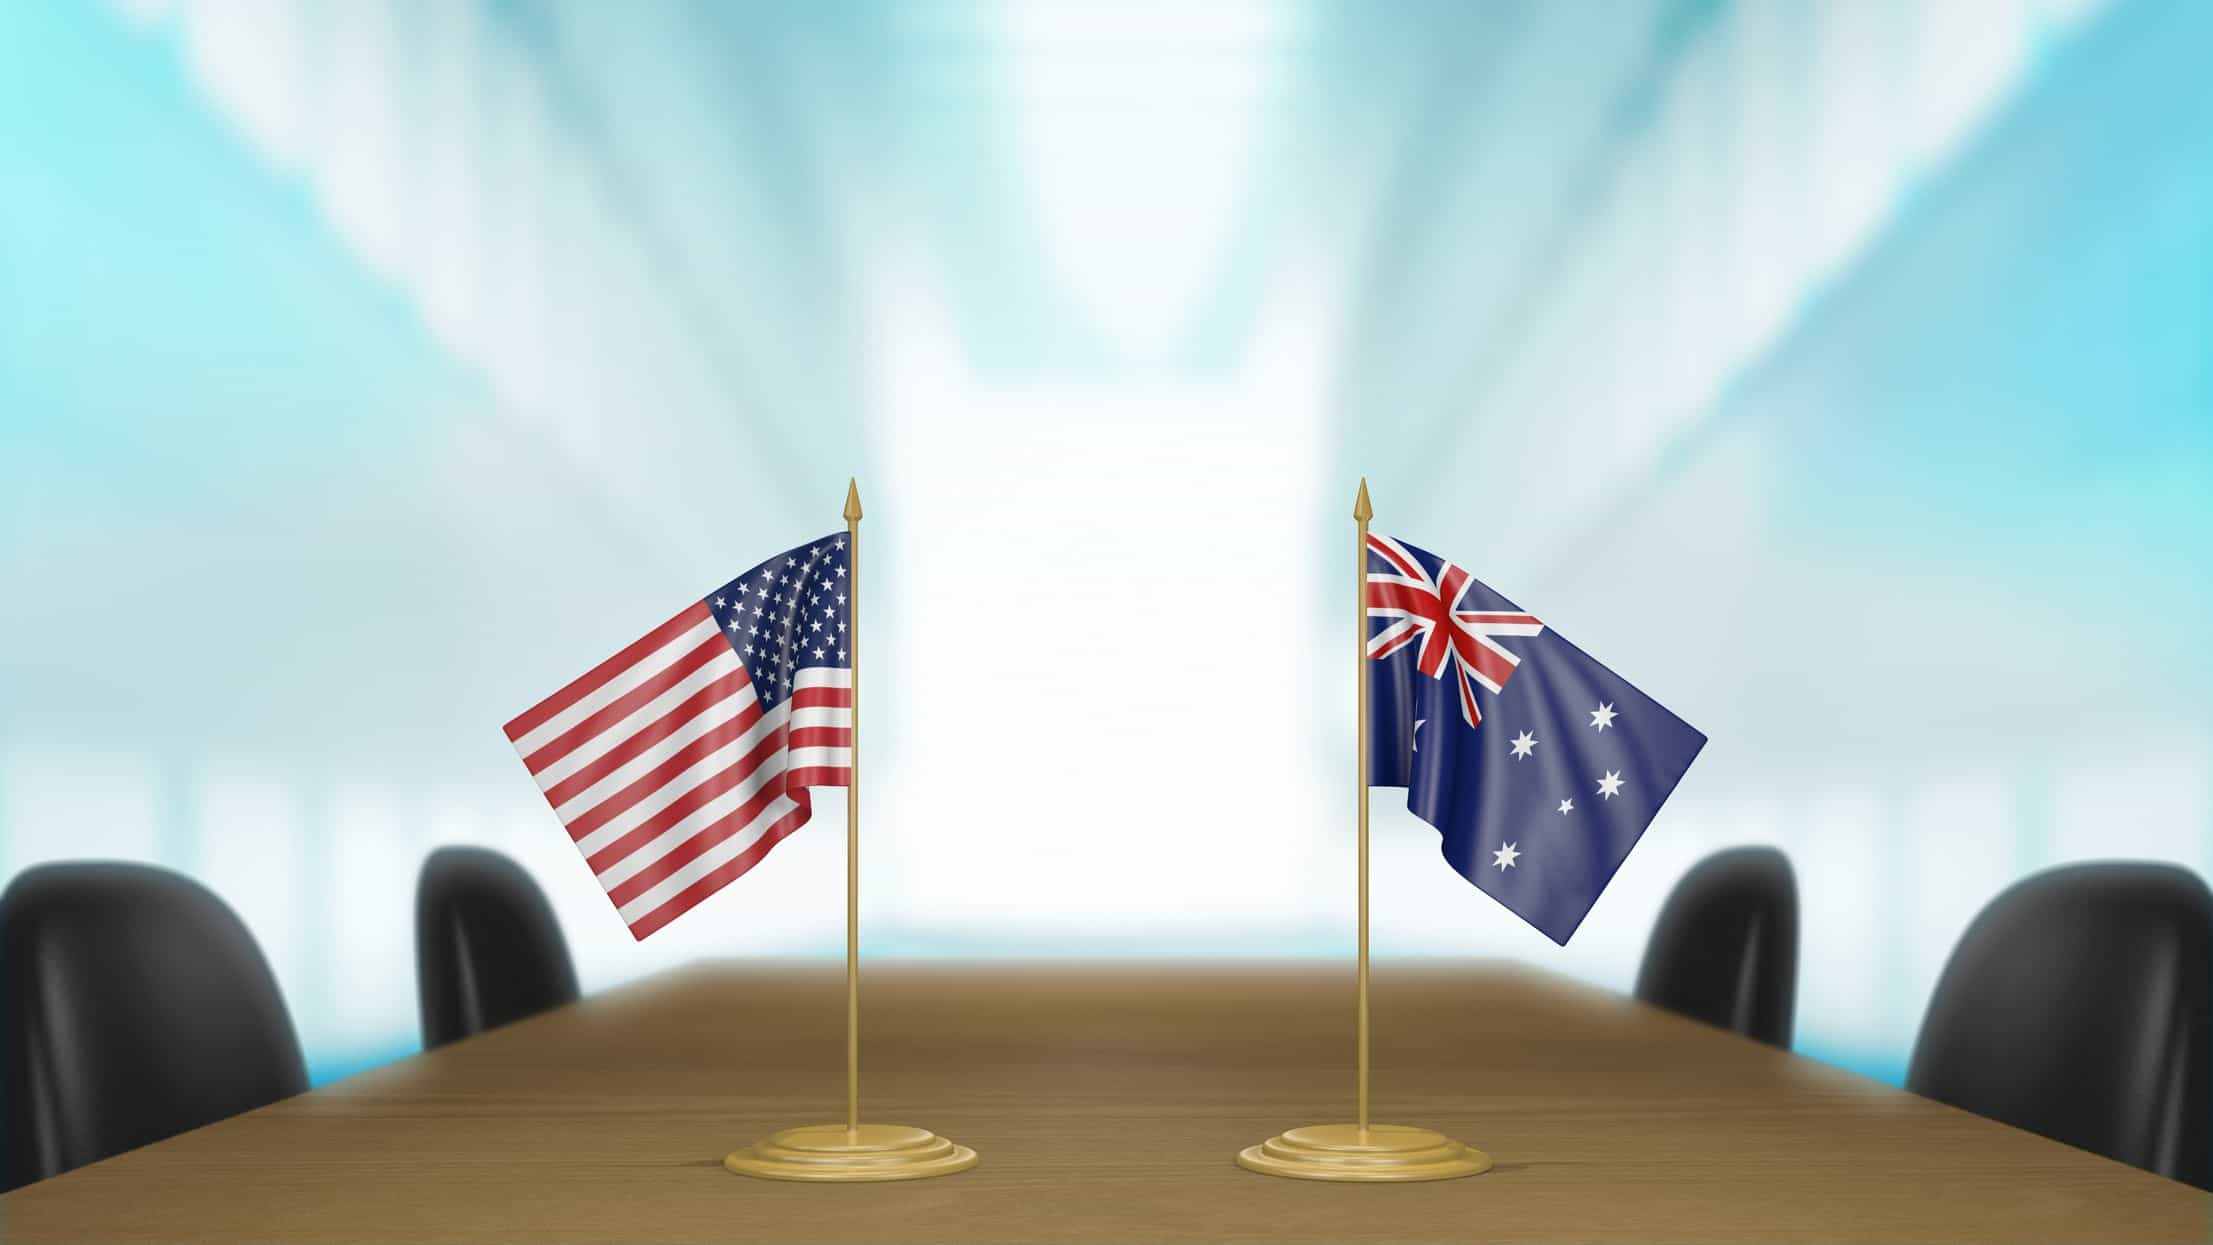 australian and american flags on boardroom table